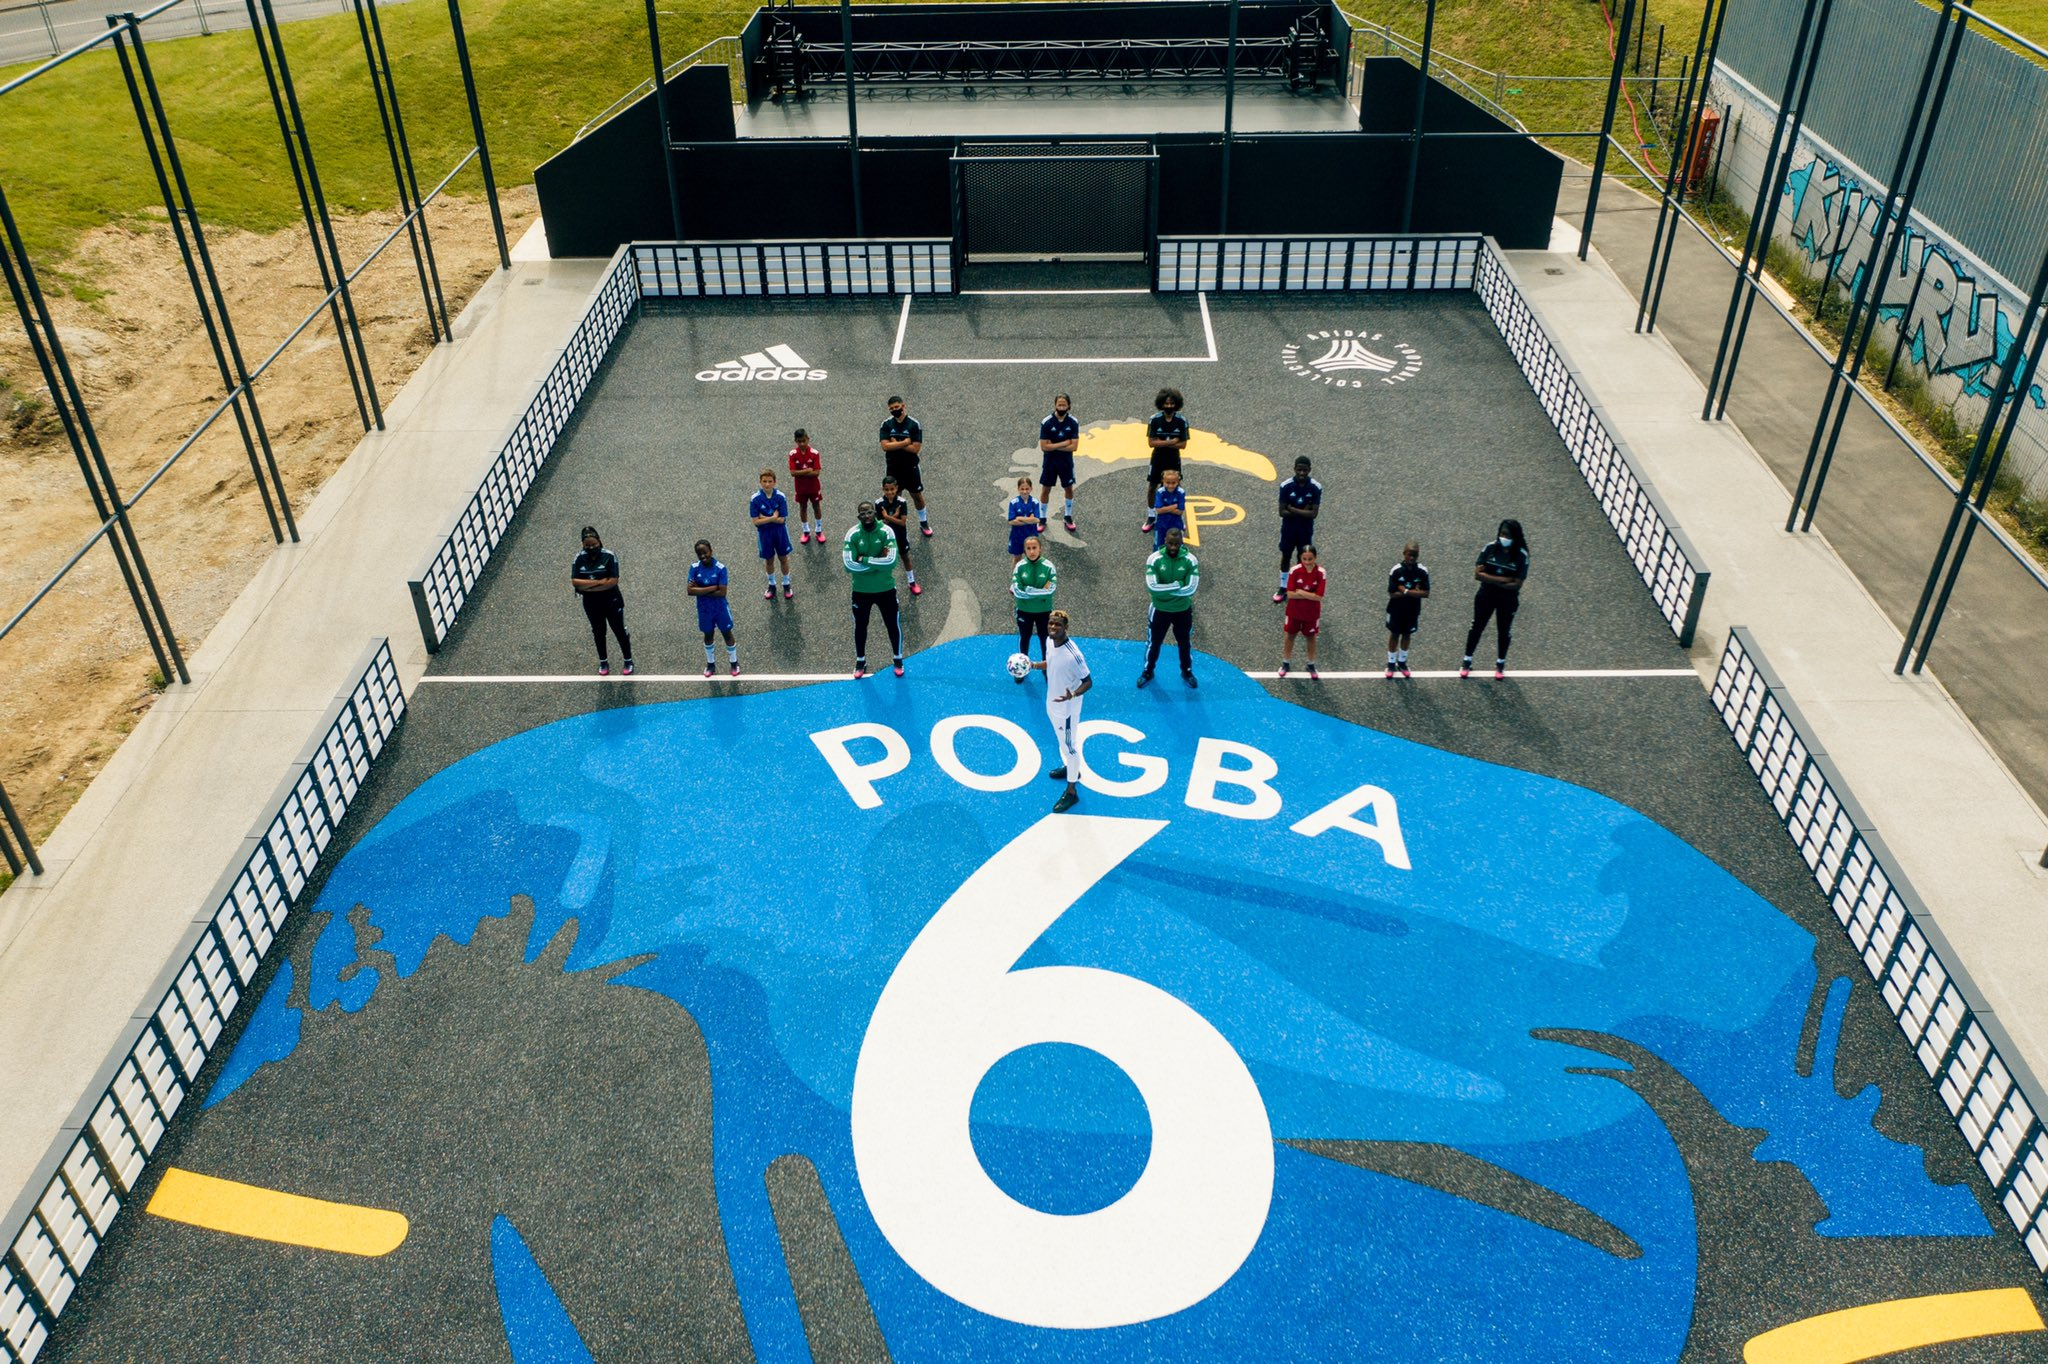 """Paul Pogba on Twitter: """"My adidas Pog'Pitch at 🏠 for the next generation.  🎁 Roissy la source, Yessirskiiii ! #adidasFootballCollective 🤜🏾🤛🏾  @adidasFootball… https://t.co/6c10ivWd00"""""""